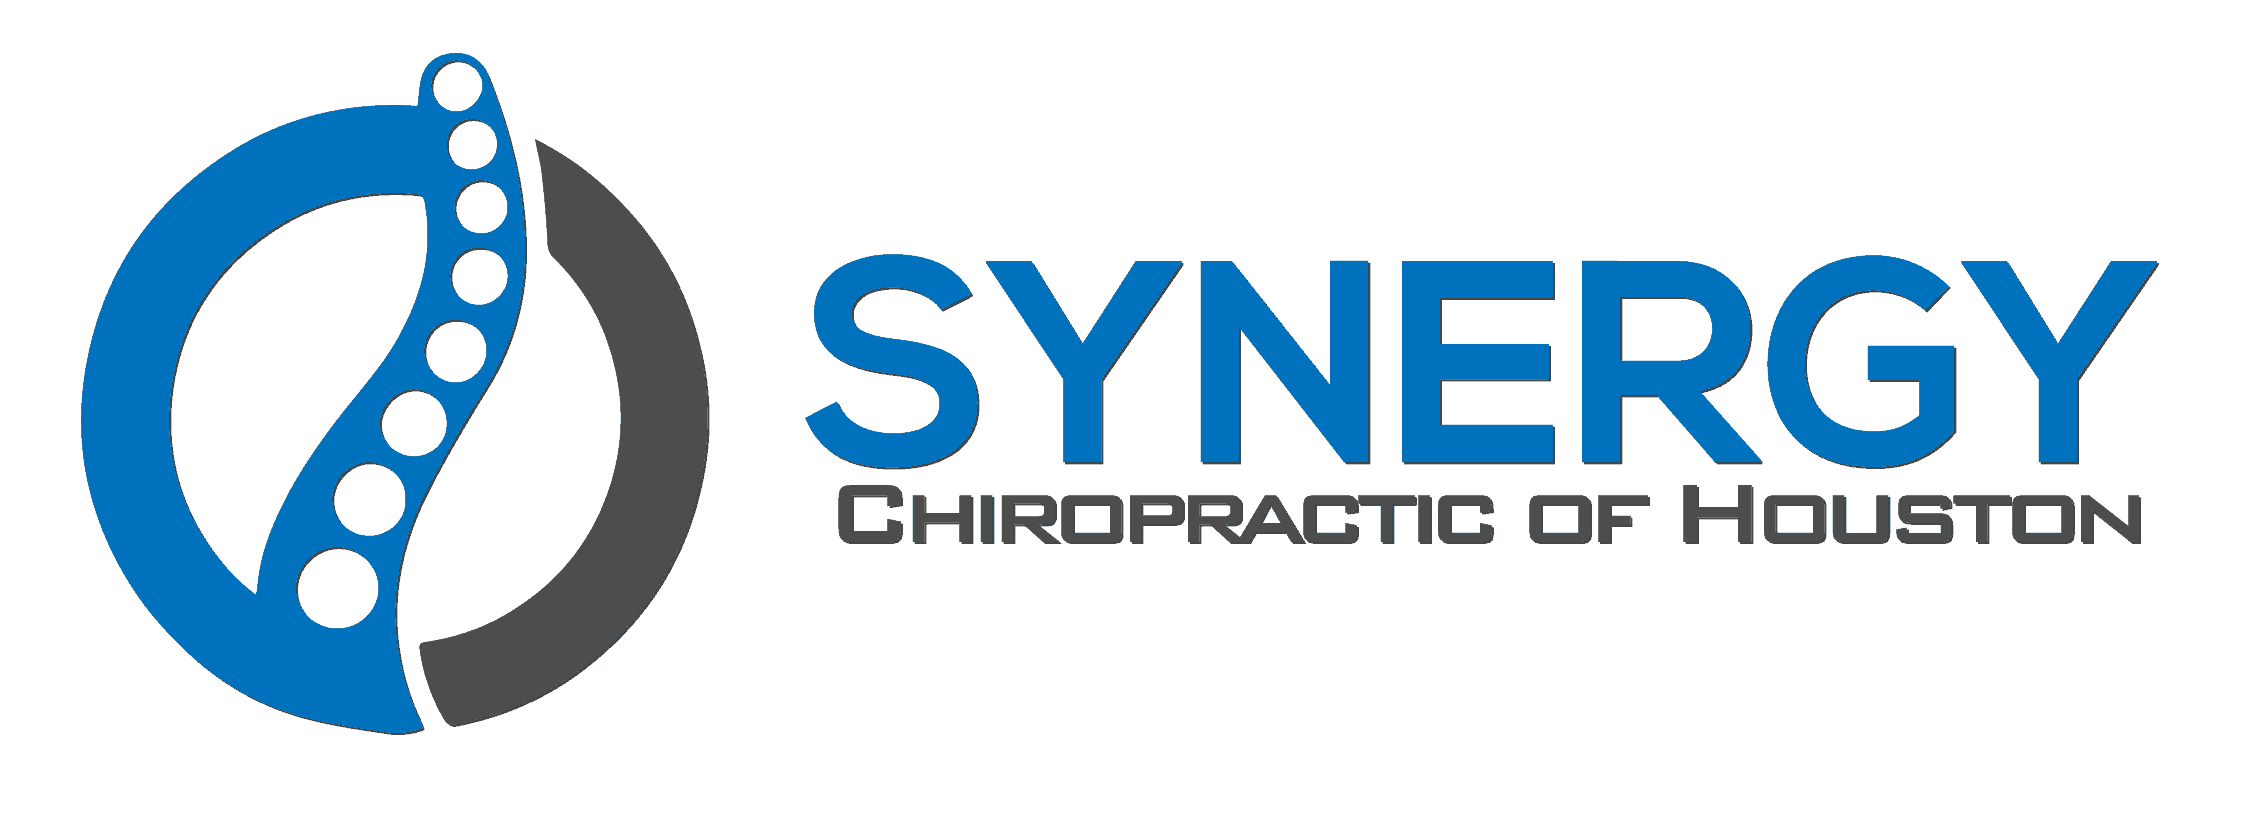 Synergy Chiropractic of Houston – The Growth Continues